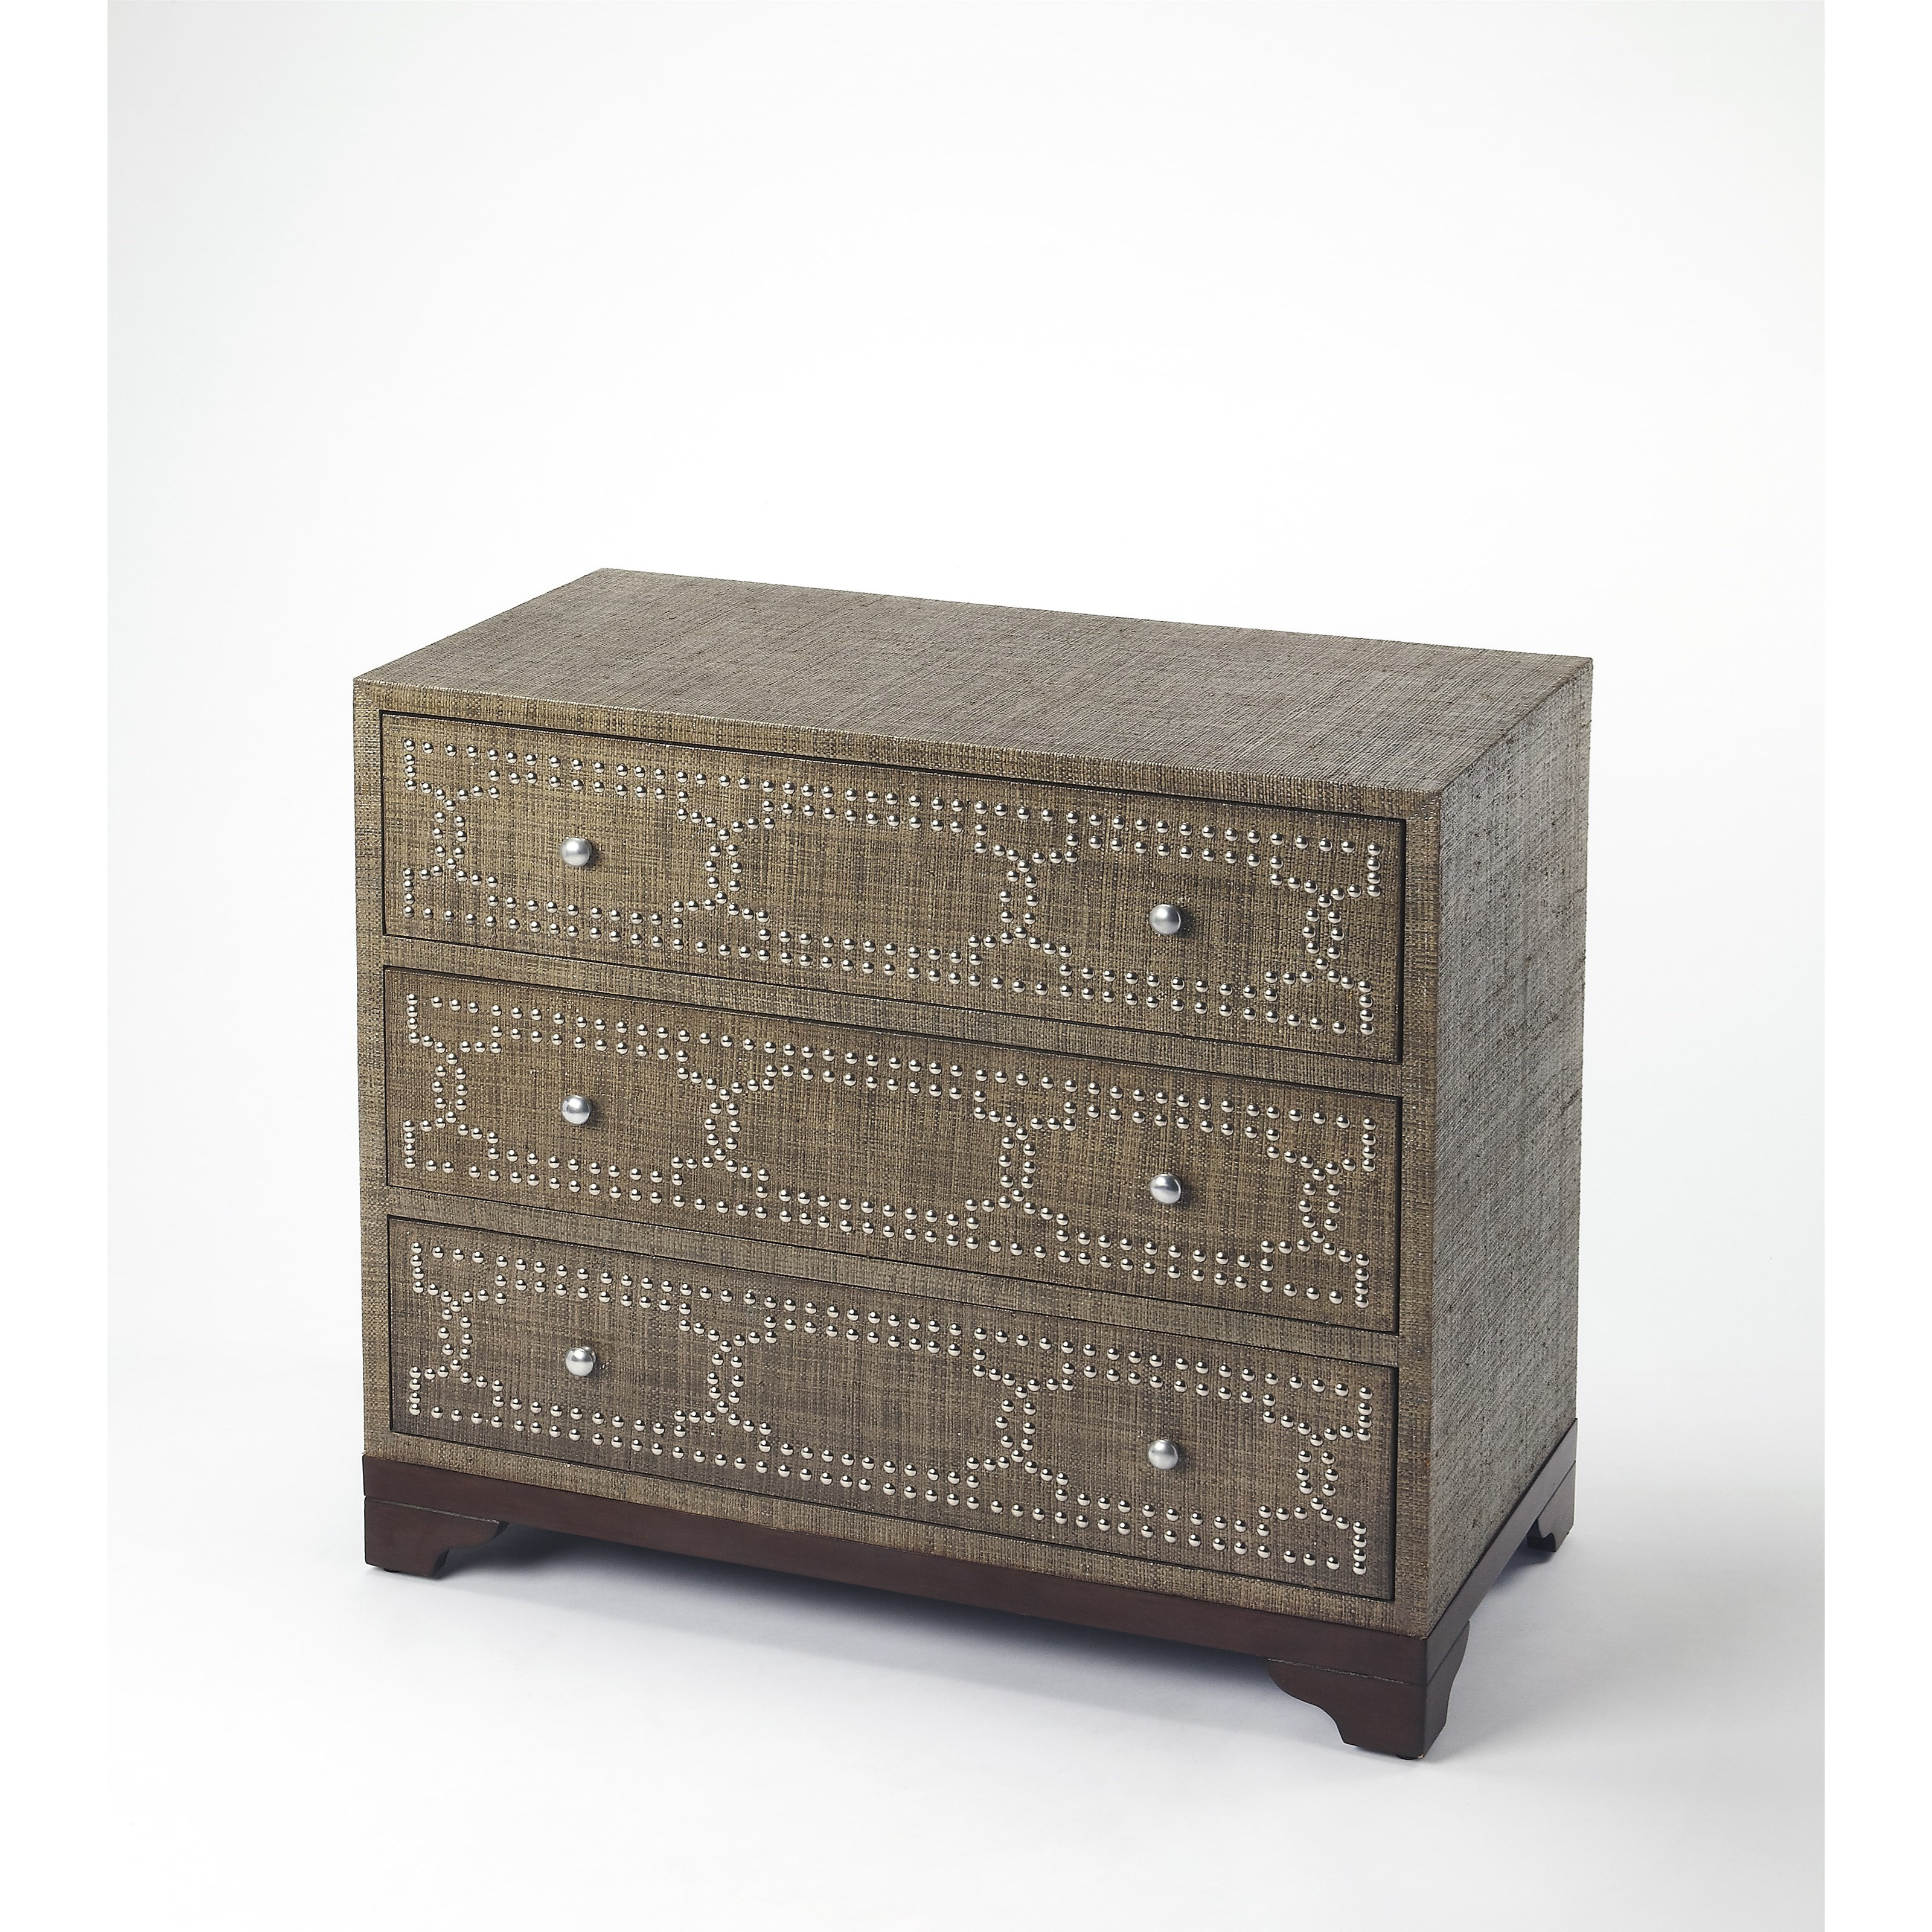 Butler Specialty Company Cosmopolitan Console Chest - Item Number: 3704350